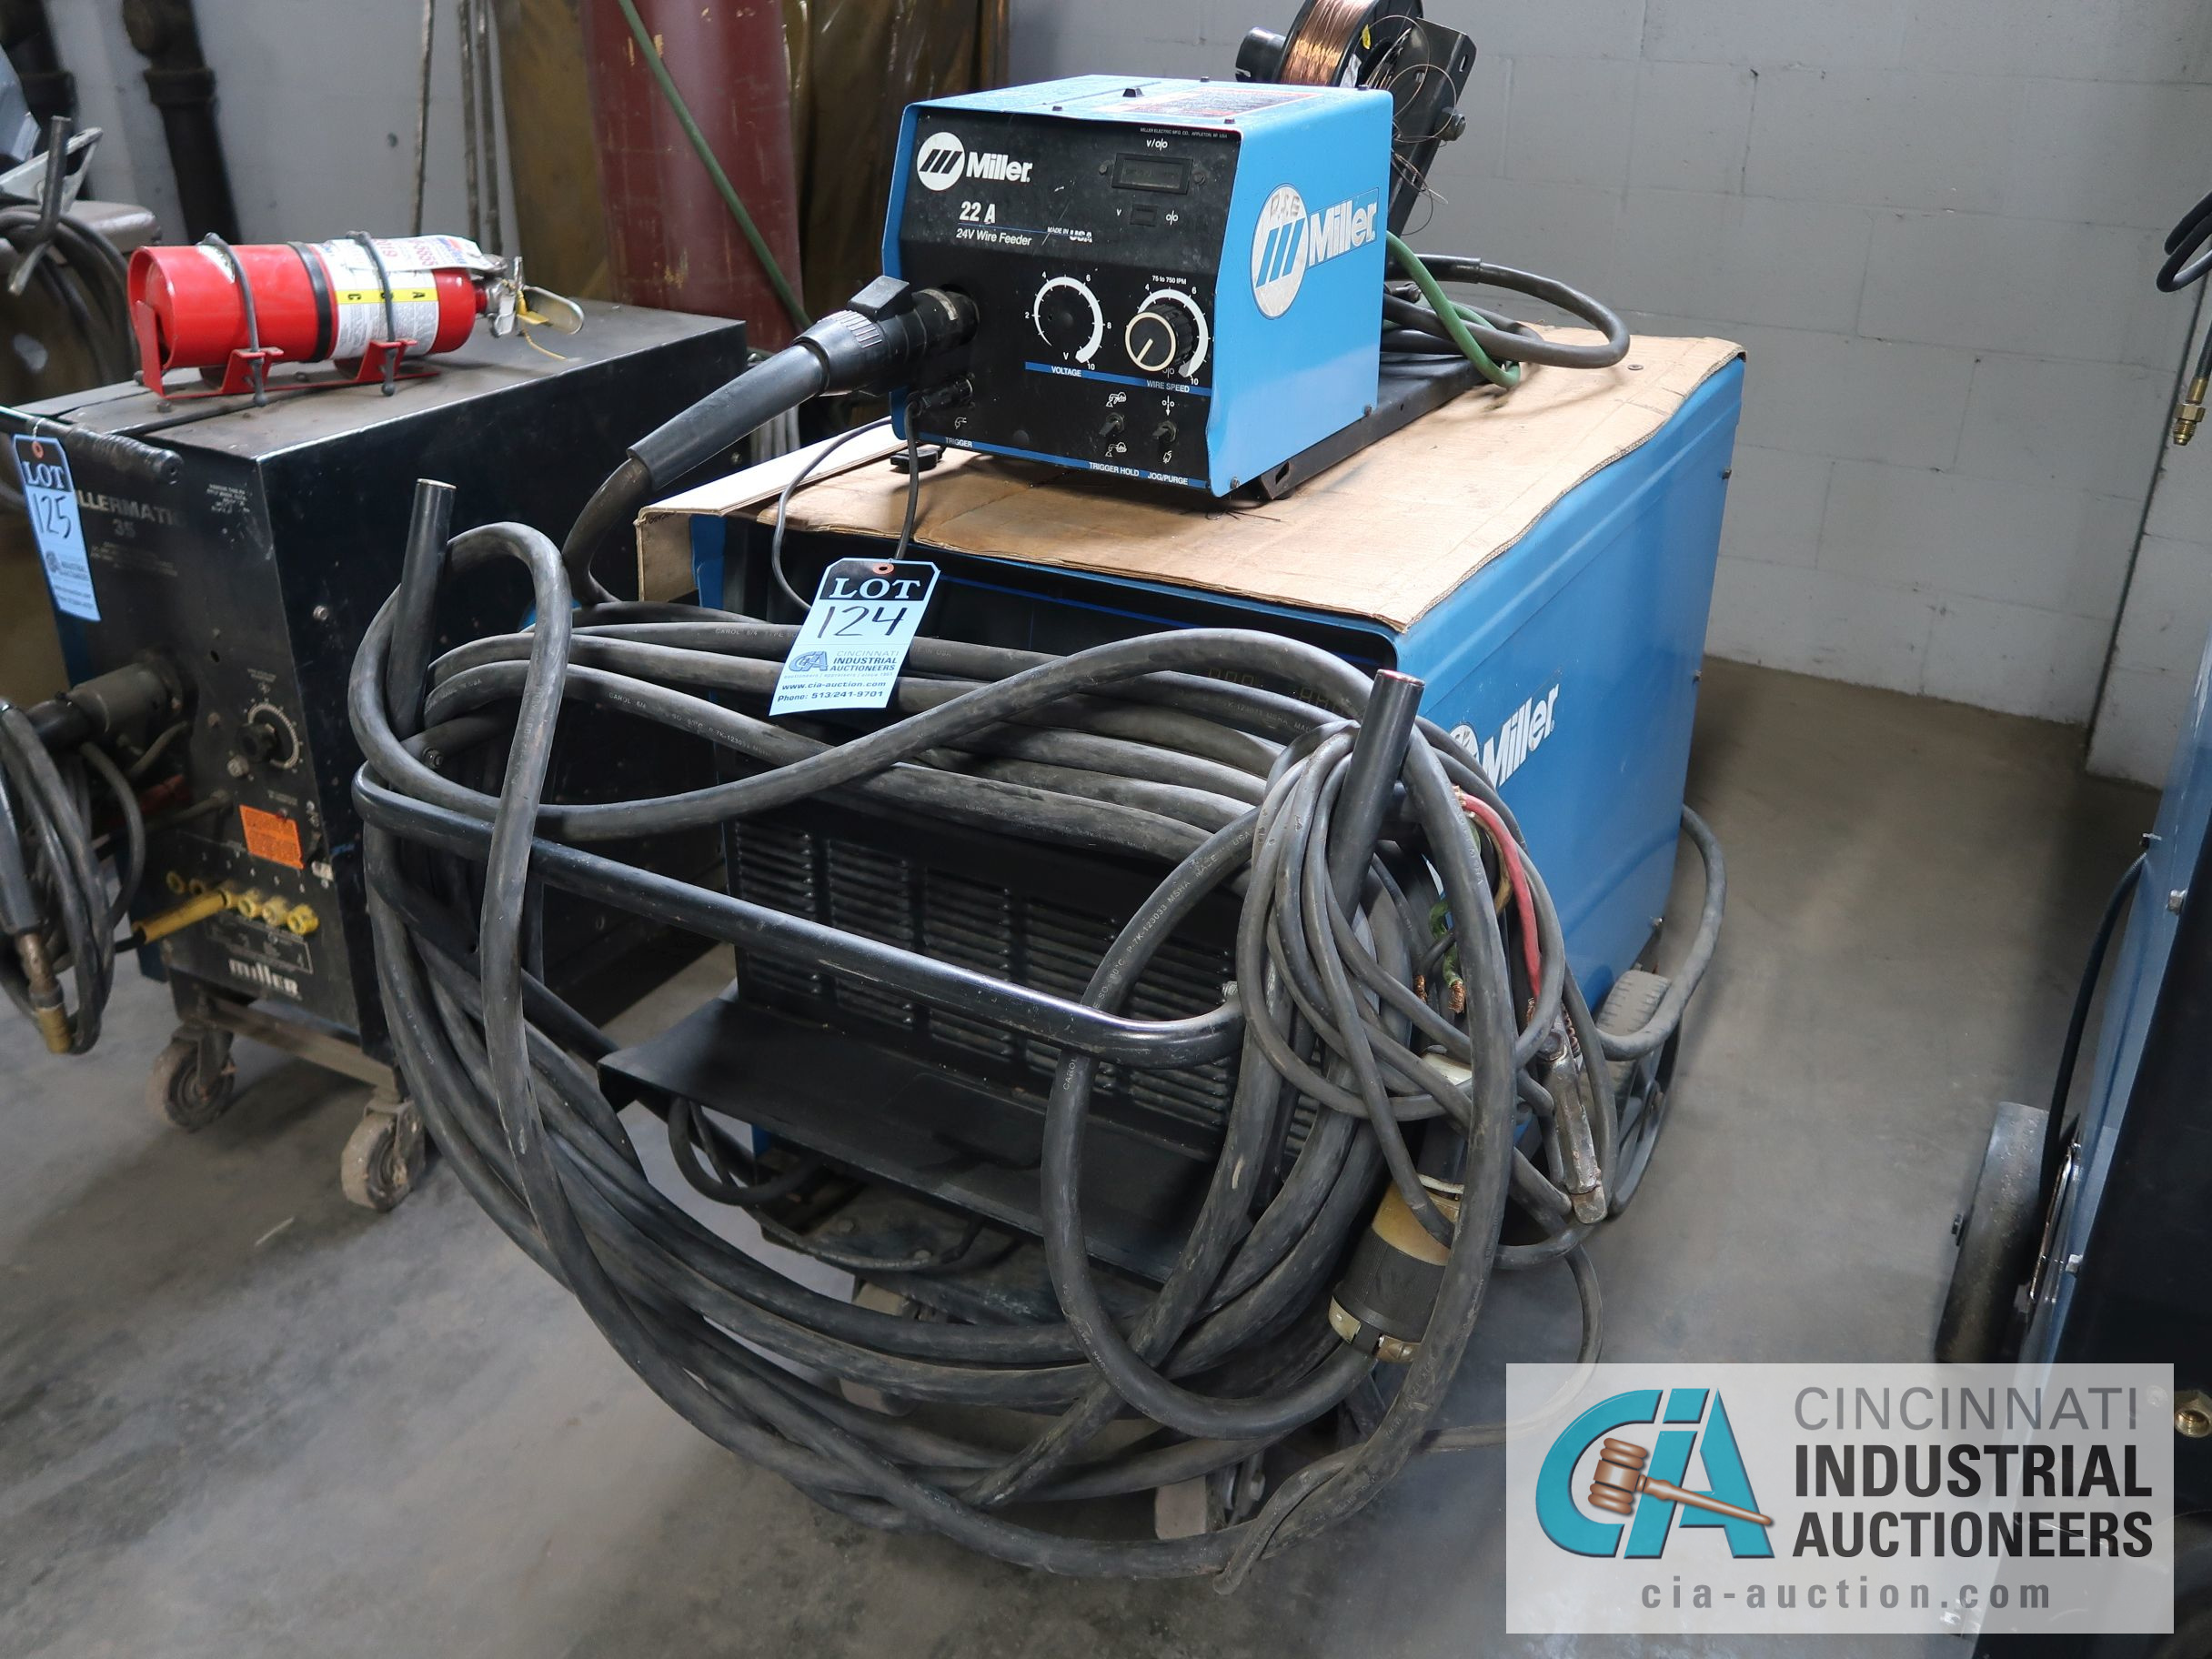 450 AMP MILLER DELTAWELD 452 MIG WELDER WITH MILLER 22A WIRE FEED; S/N LB106141